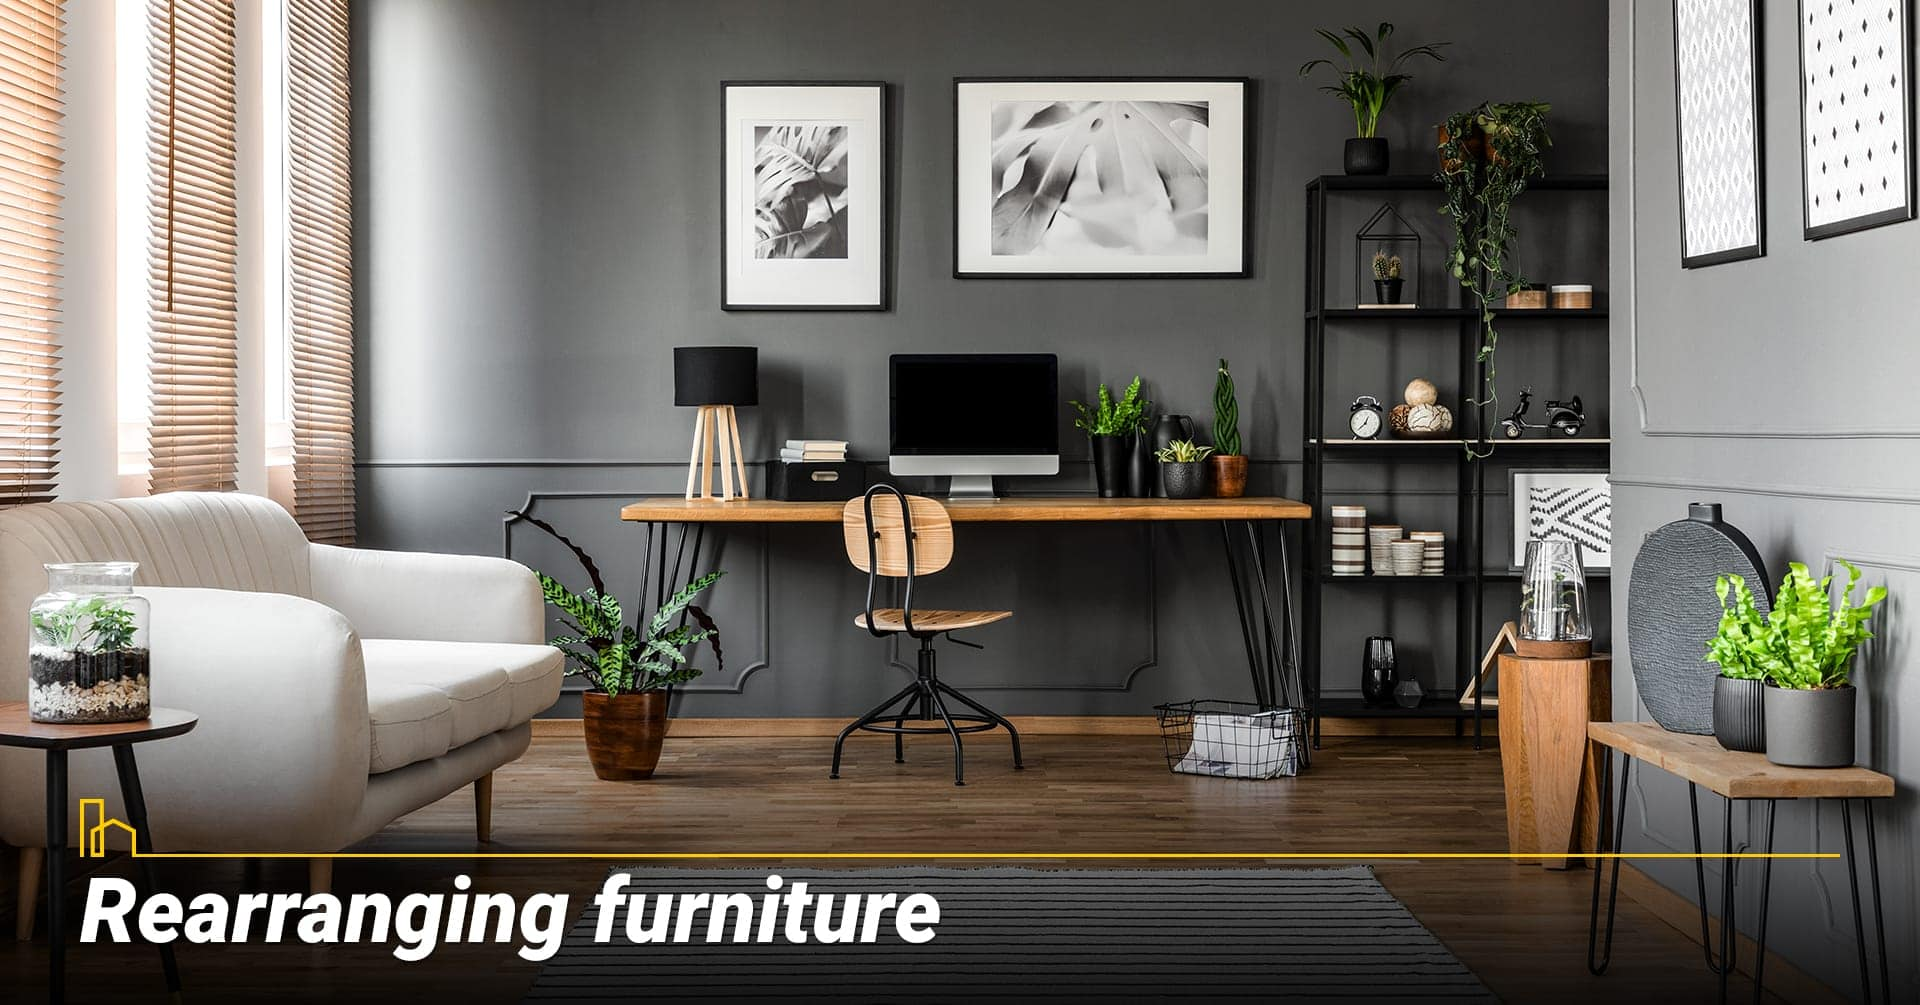 Rearranging furniture, give your room a new look